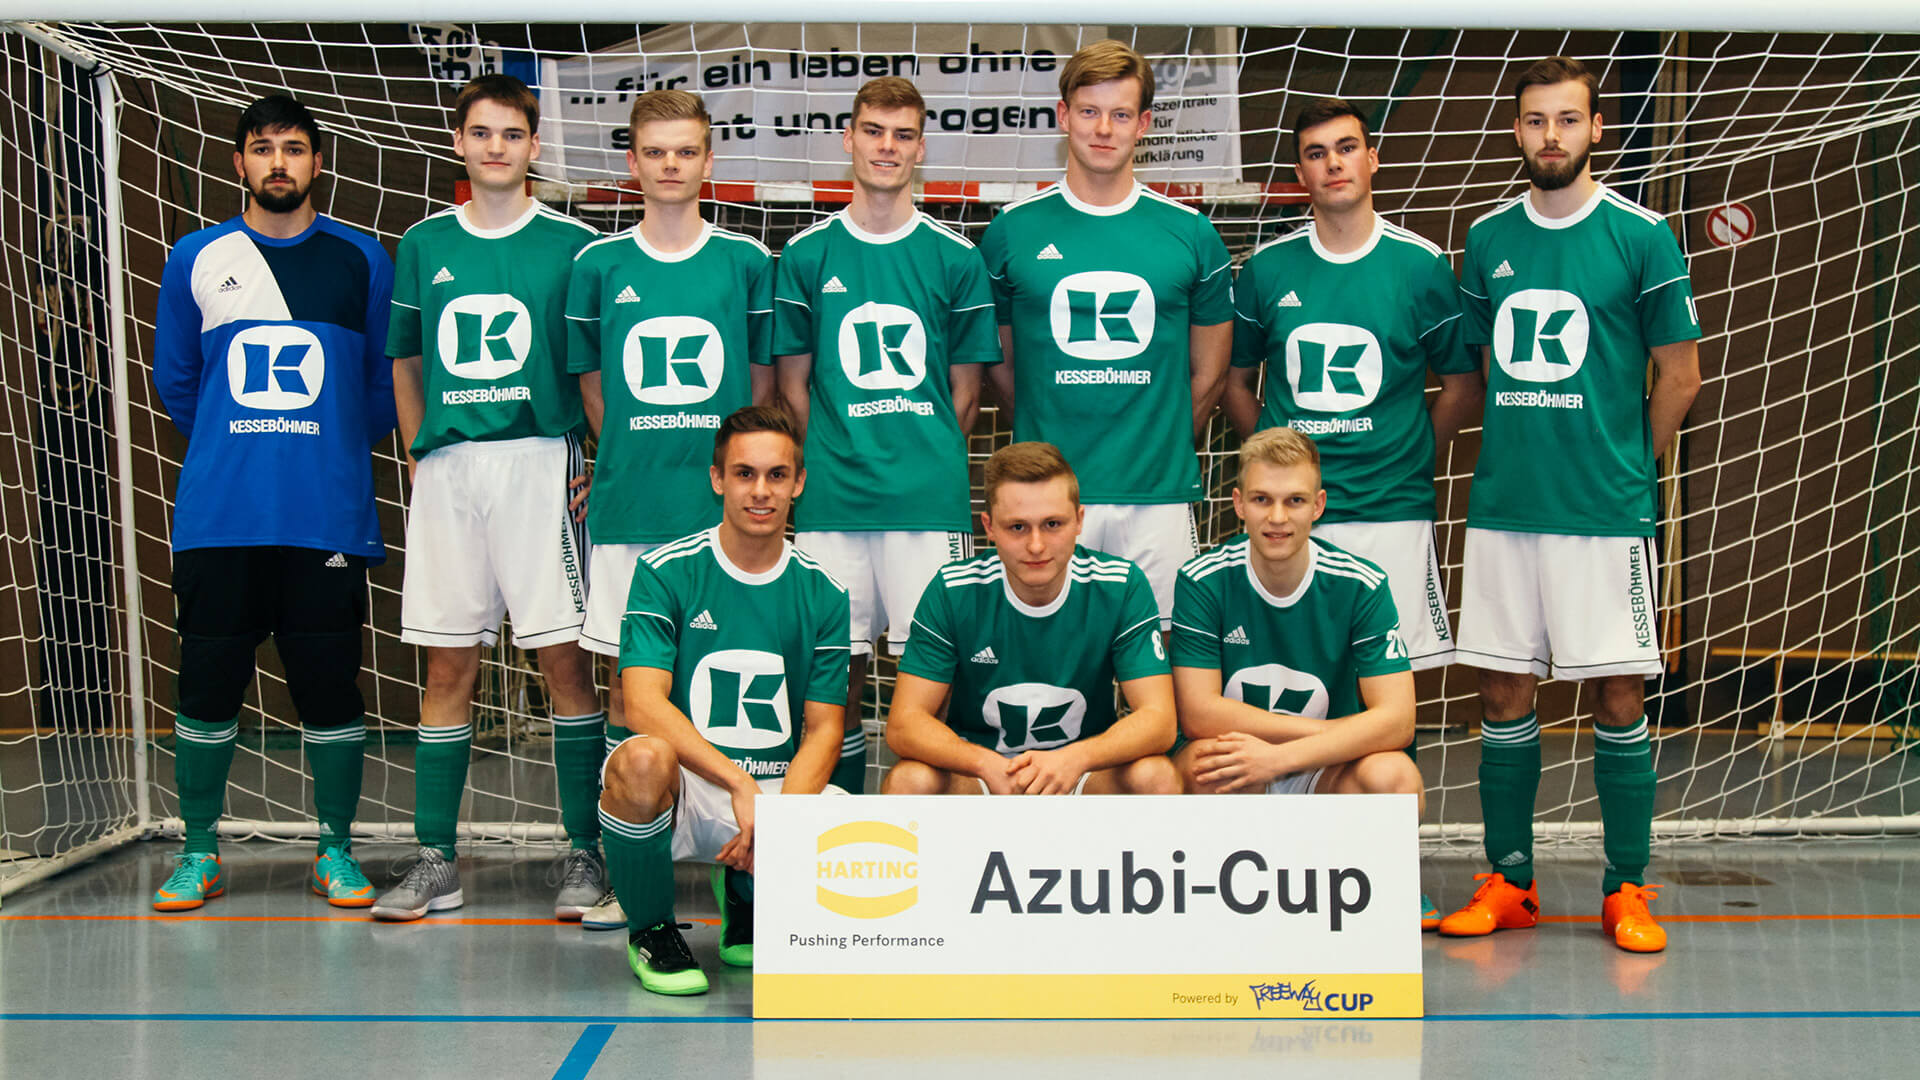 HARTING Azubi-Cup in Espelkamp